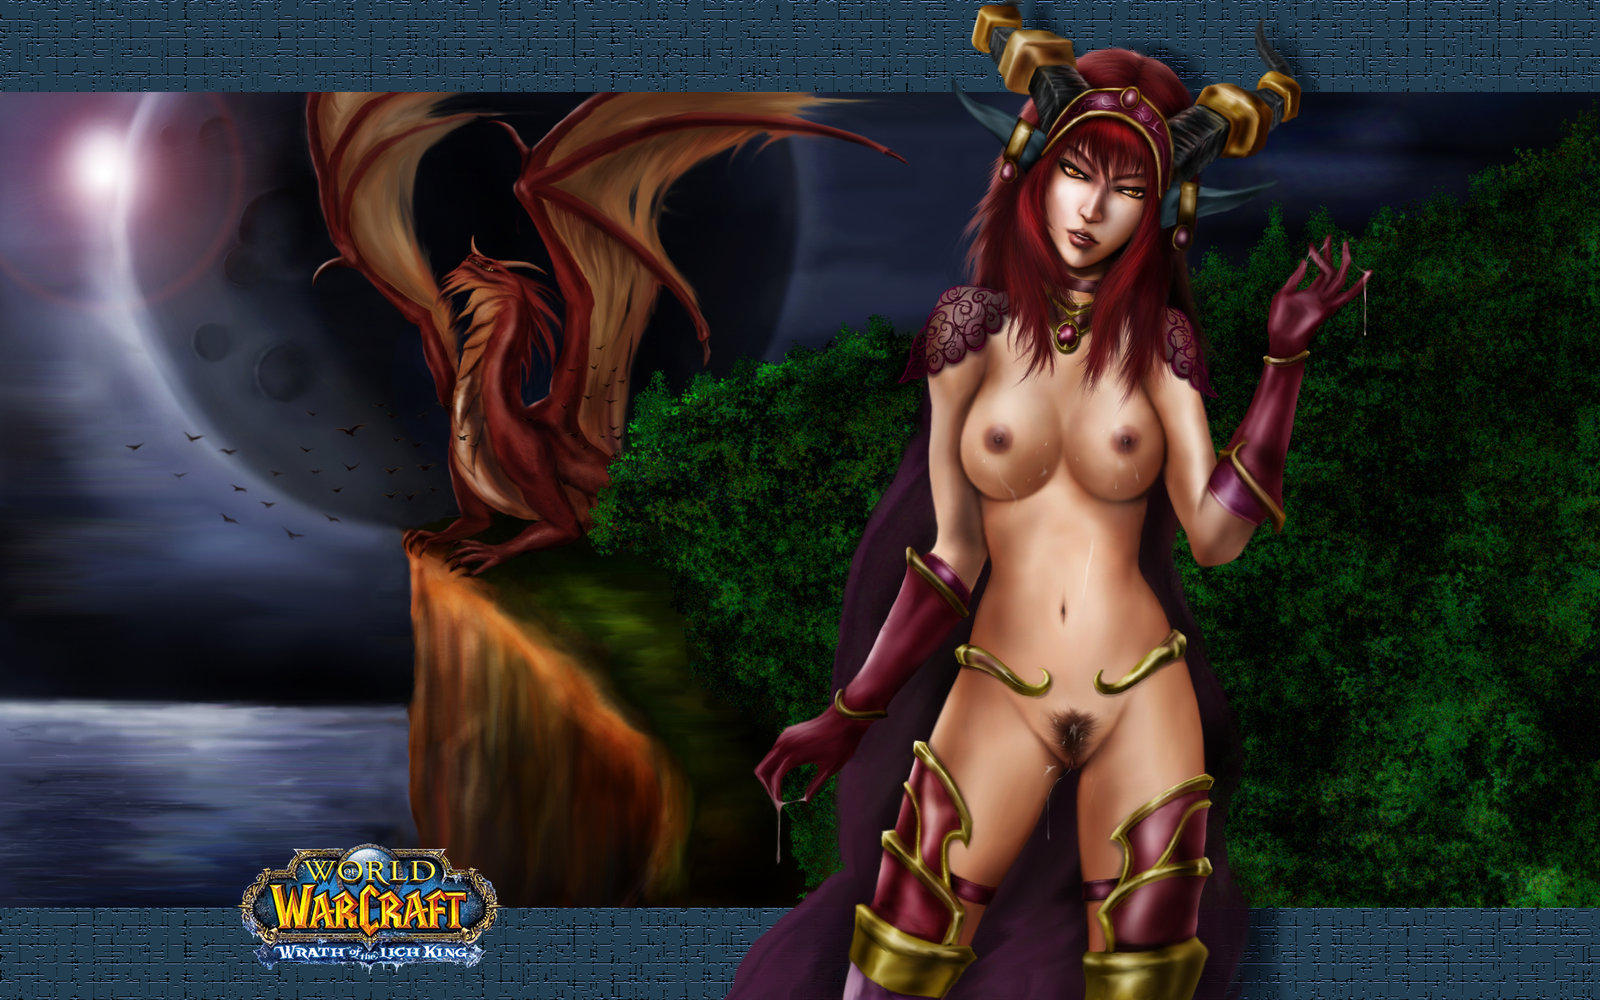 World of warcraft hentai alexstraza porn pics